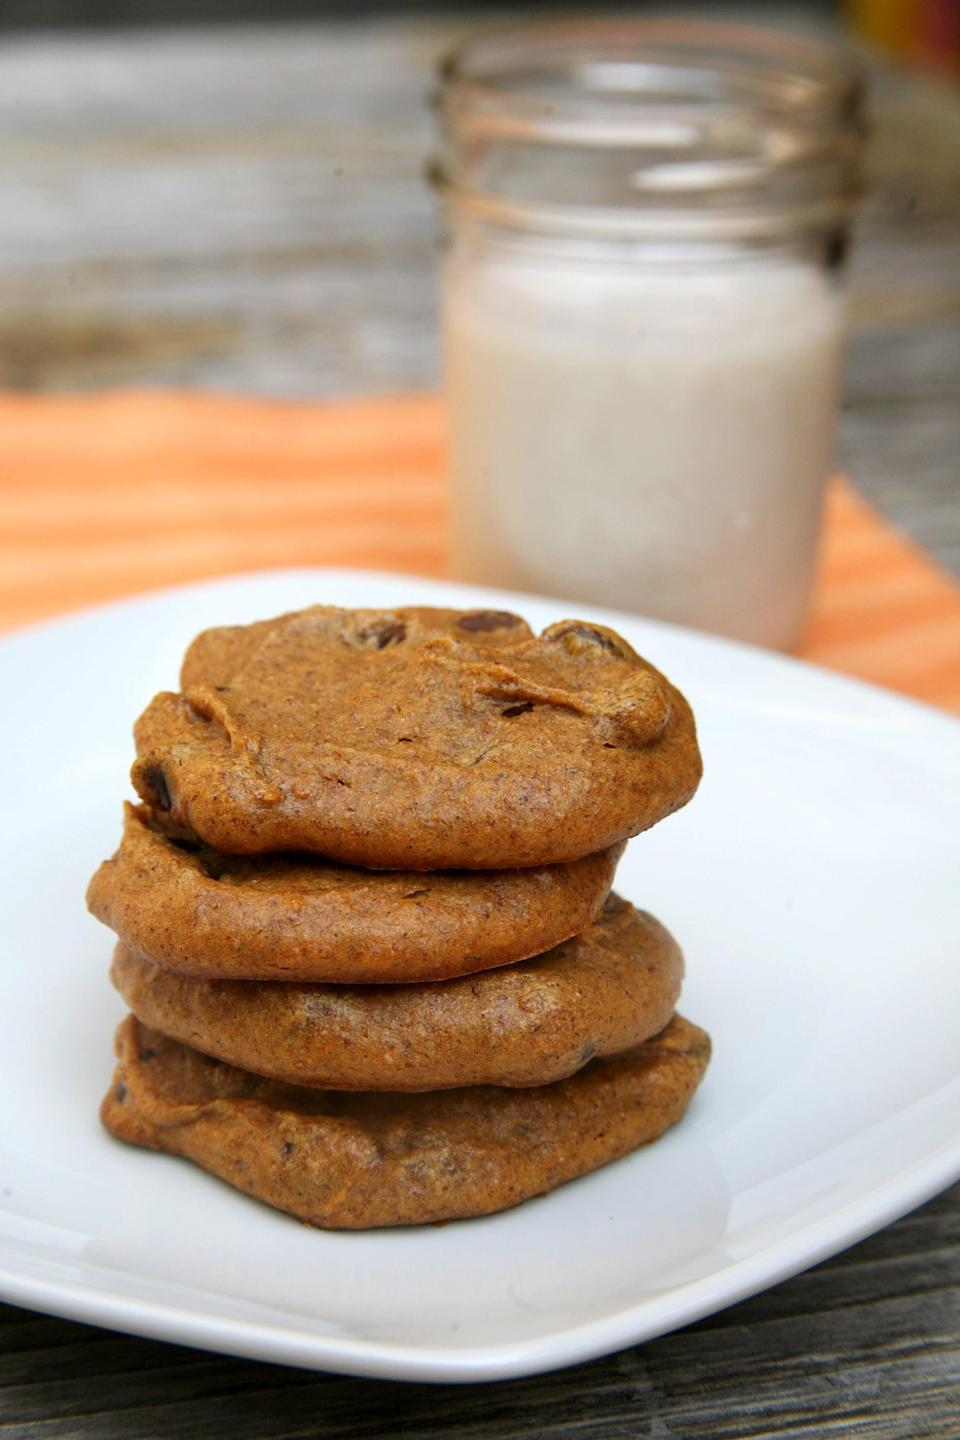 """<p>These seven-ingredient cookies are grain-free, so they're low in carbs and low in sugar, but they offer a decent amount of protein - three grams per cookie! </p> <p><strong>Get the recipe:</strong> <a href=""""https://www.popsugar.com/fitness/Vegan-Gluten-Free-Pumpkin-Cookies-27884350"""" class=""""link rapid-noclick-resp"""" rel=""""nofollow noopener"""" target=""""_blank"""" data-ylk=""""slk:gluten-free vegan pumpkin cookies"""">gluten-free vegan pumpkin cookies</a></p>"""